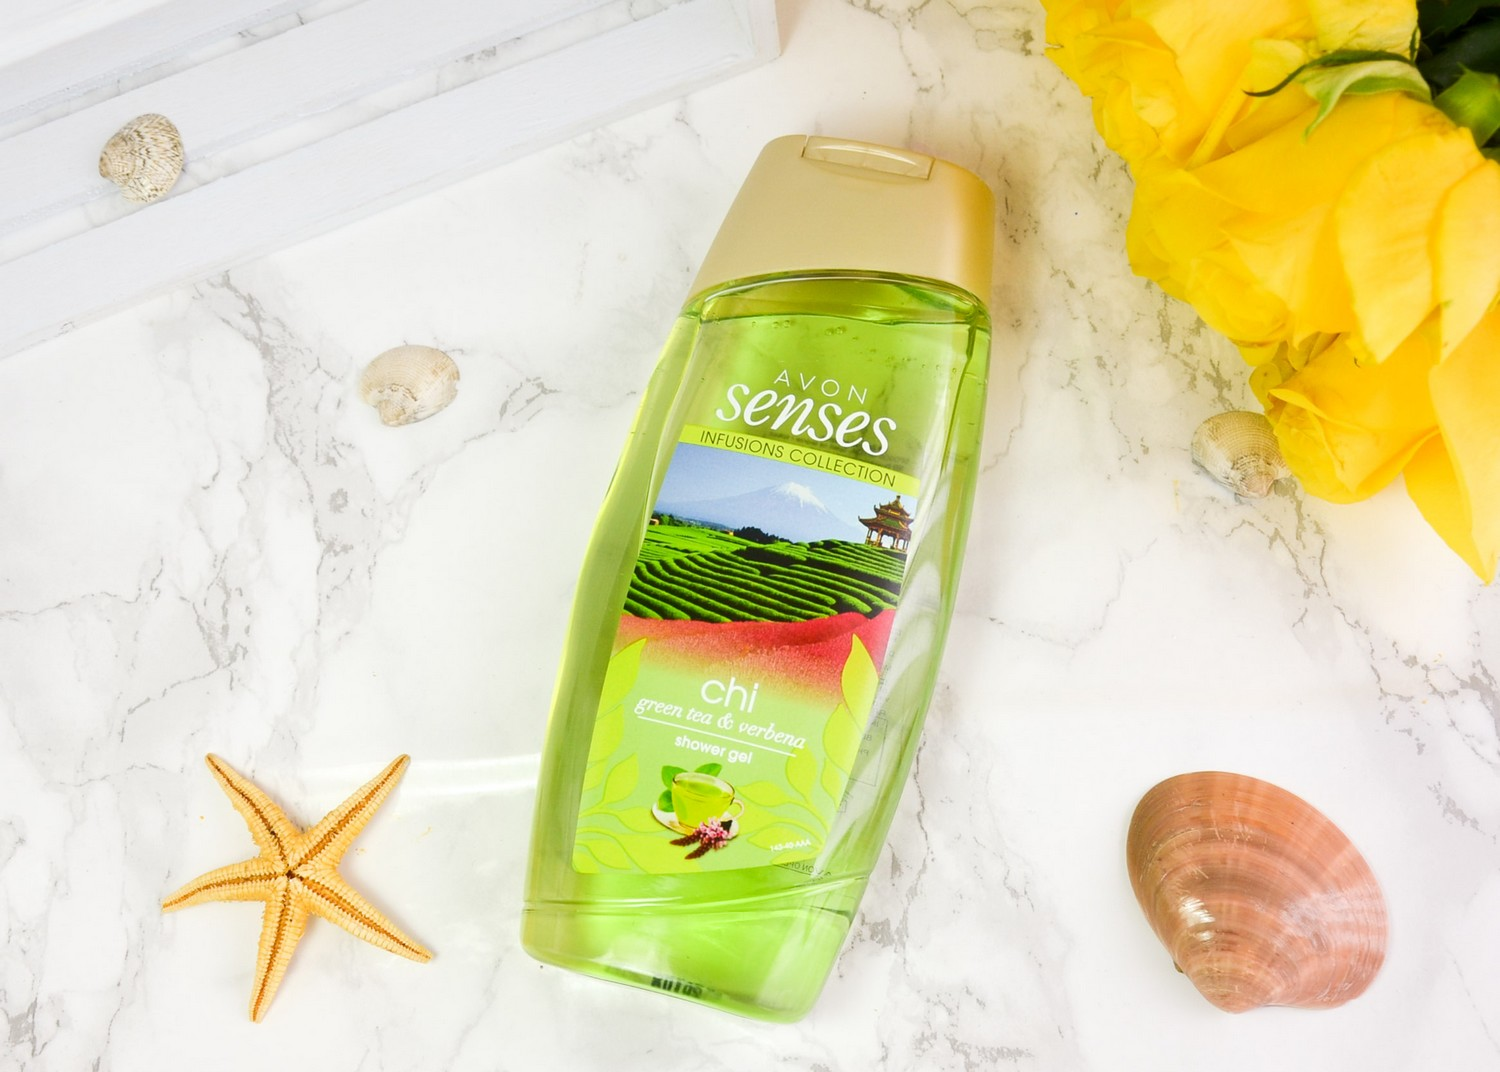 Summer 2019 Goodies From Avon | Avon Senses Infusions Collection Chi Green Tea & Verbena Shower Gel